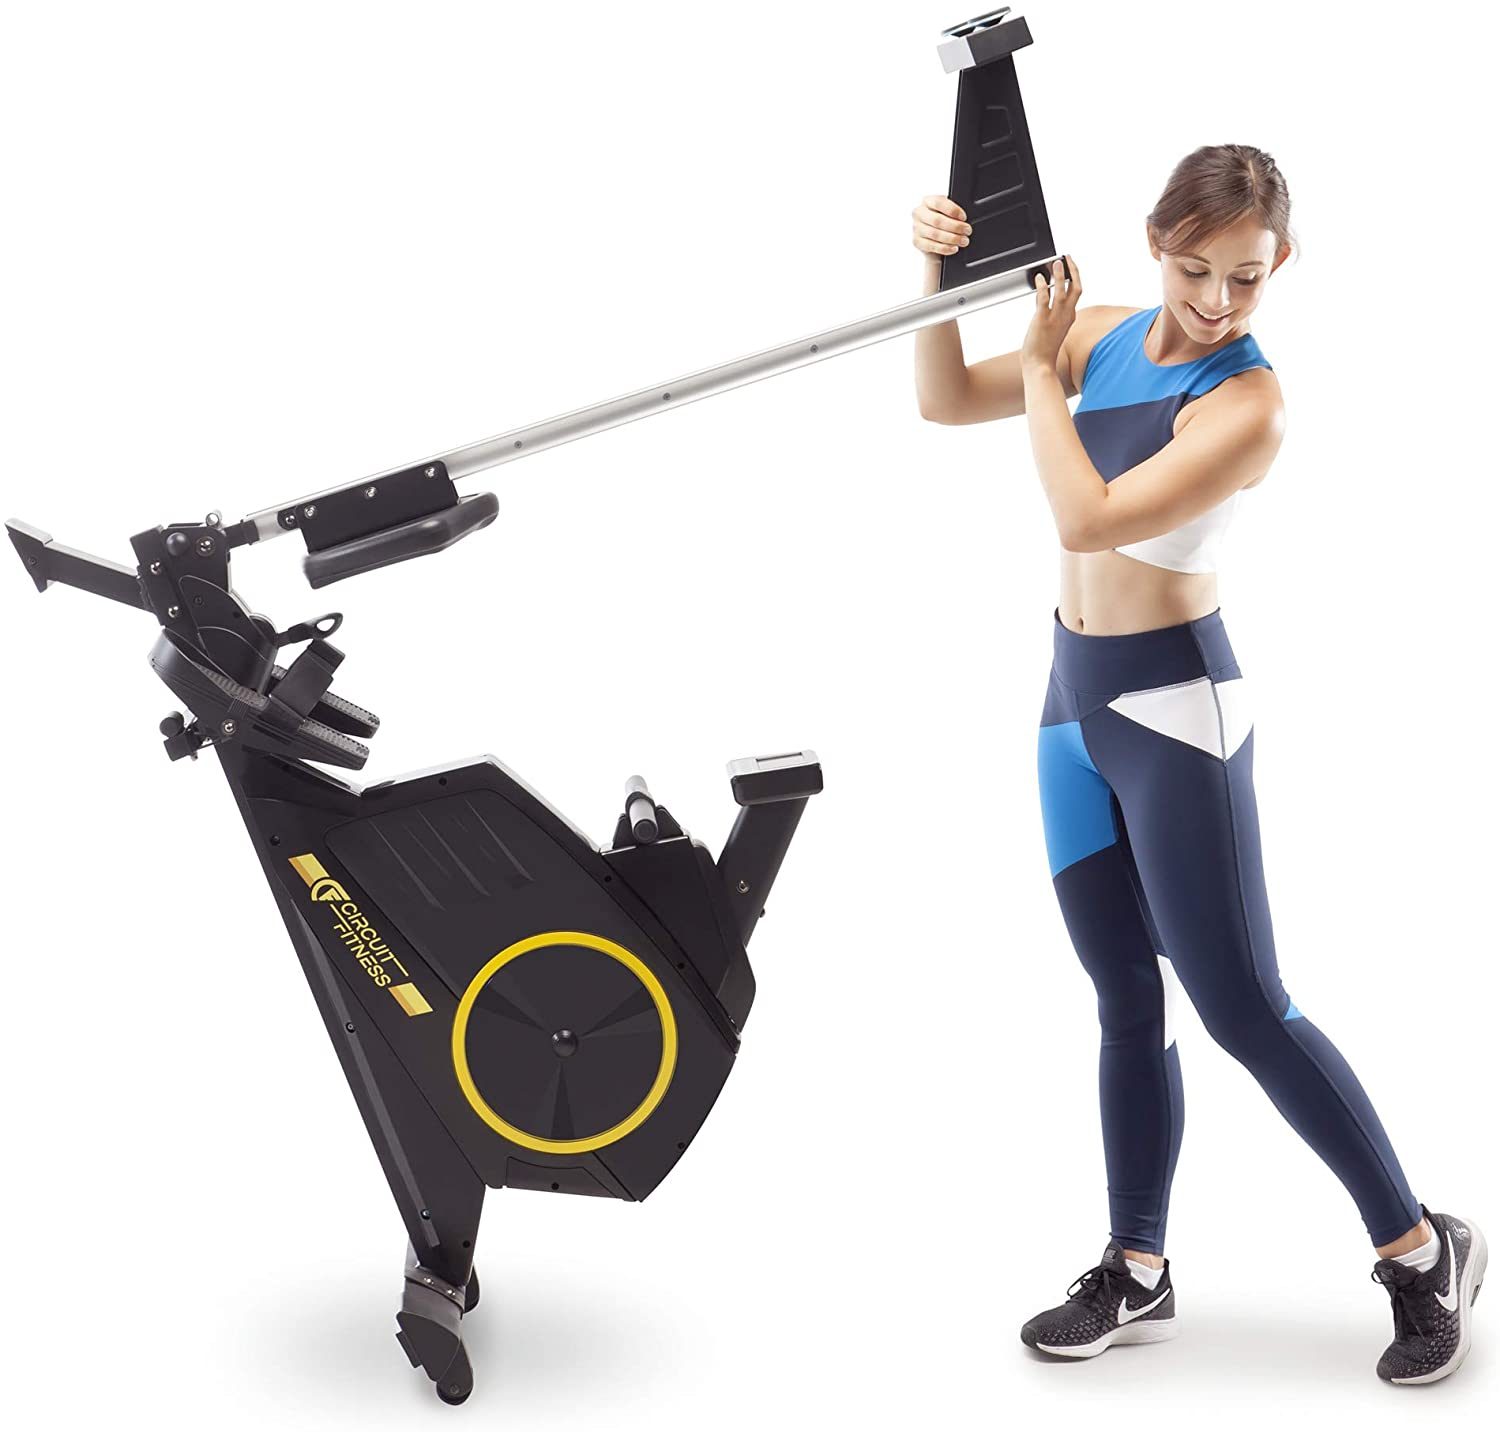 Circuit Fitness Deluxe Foldable Magnetic Rowing Machine - Folding to store the equipment